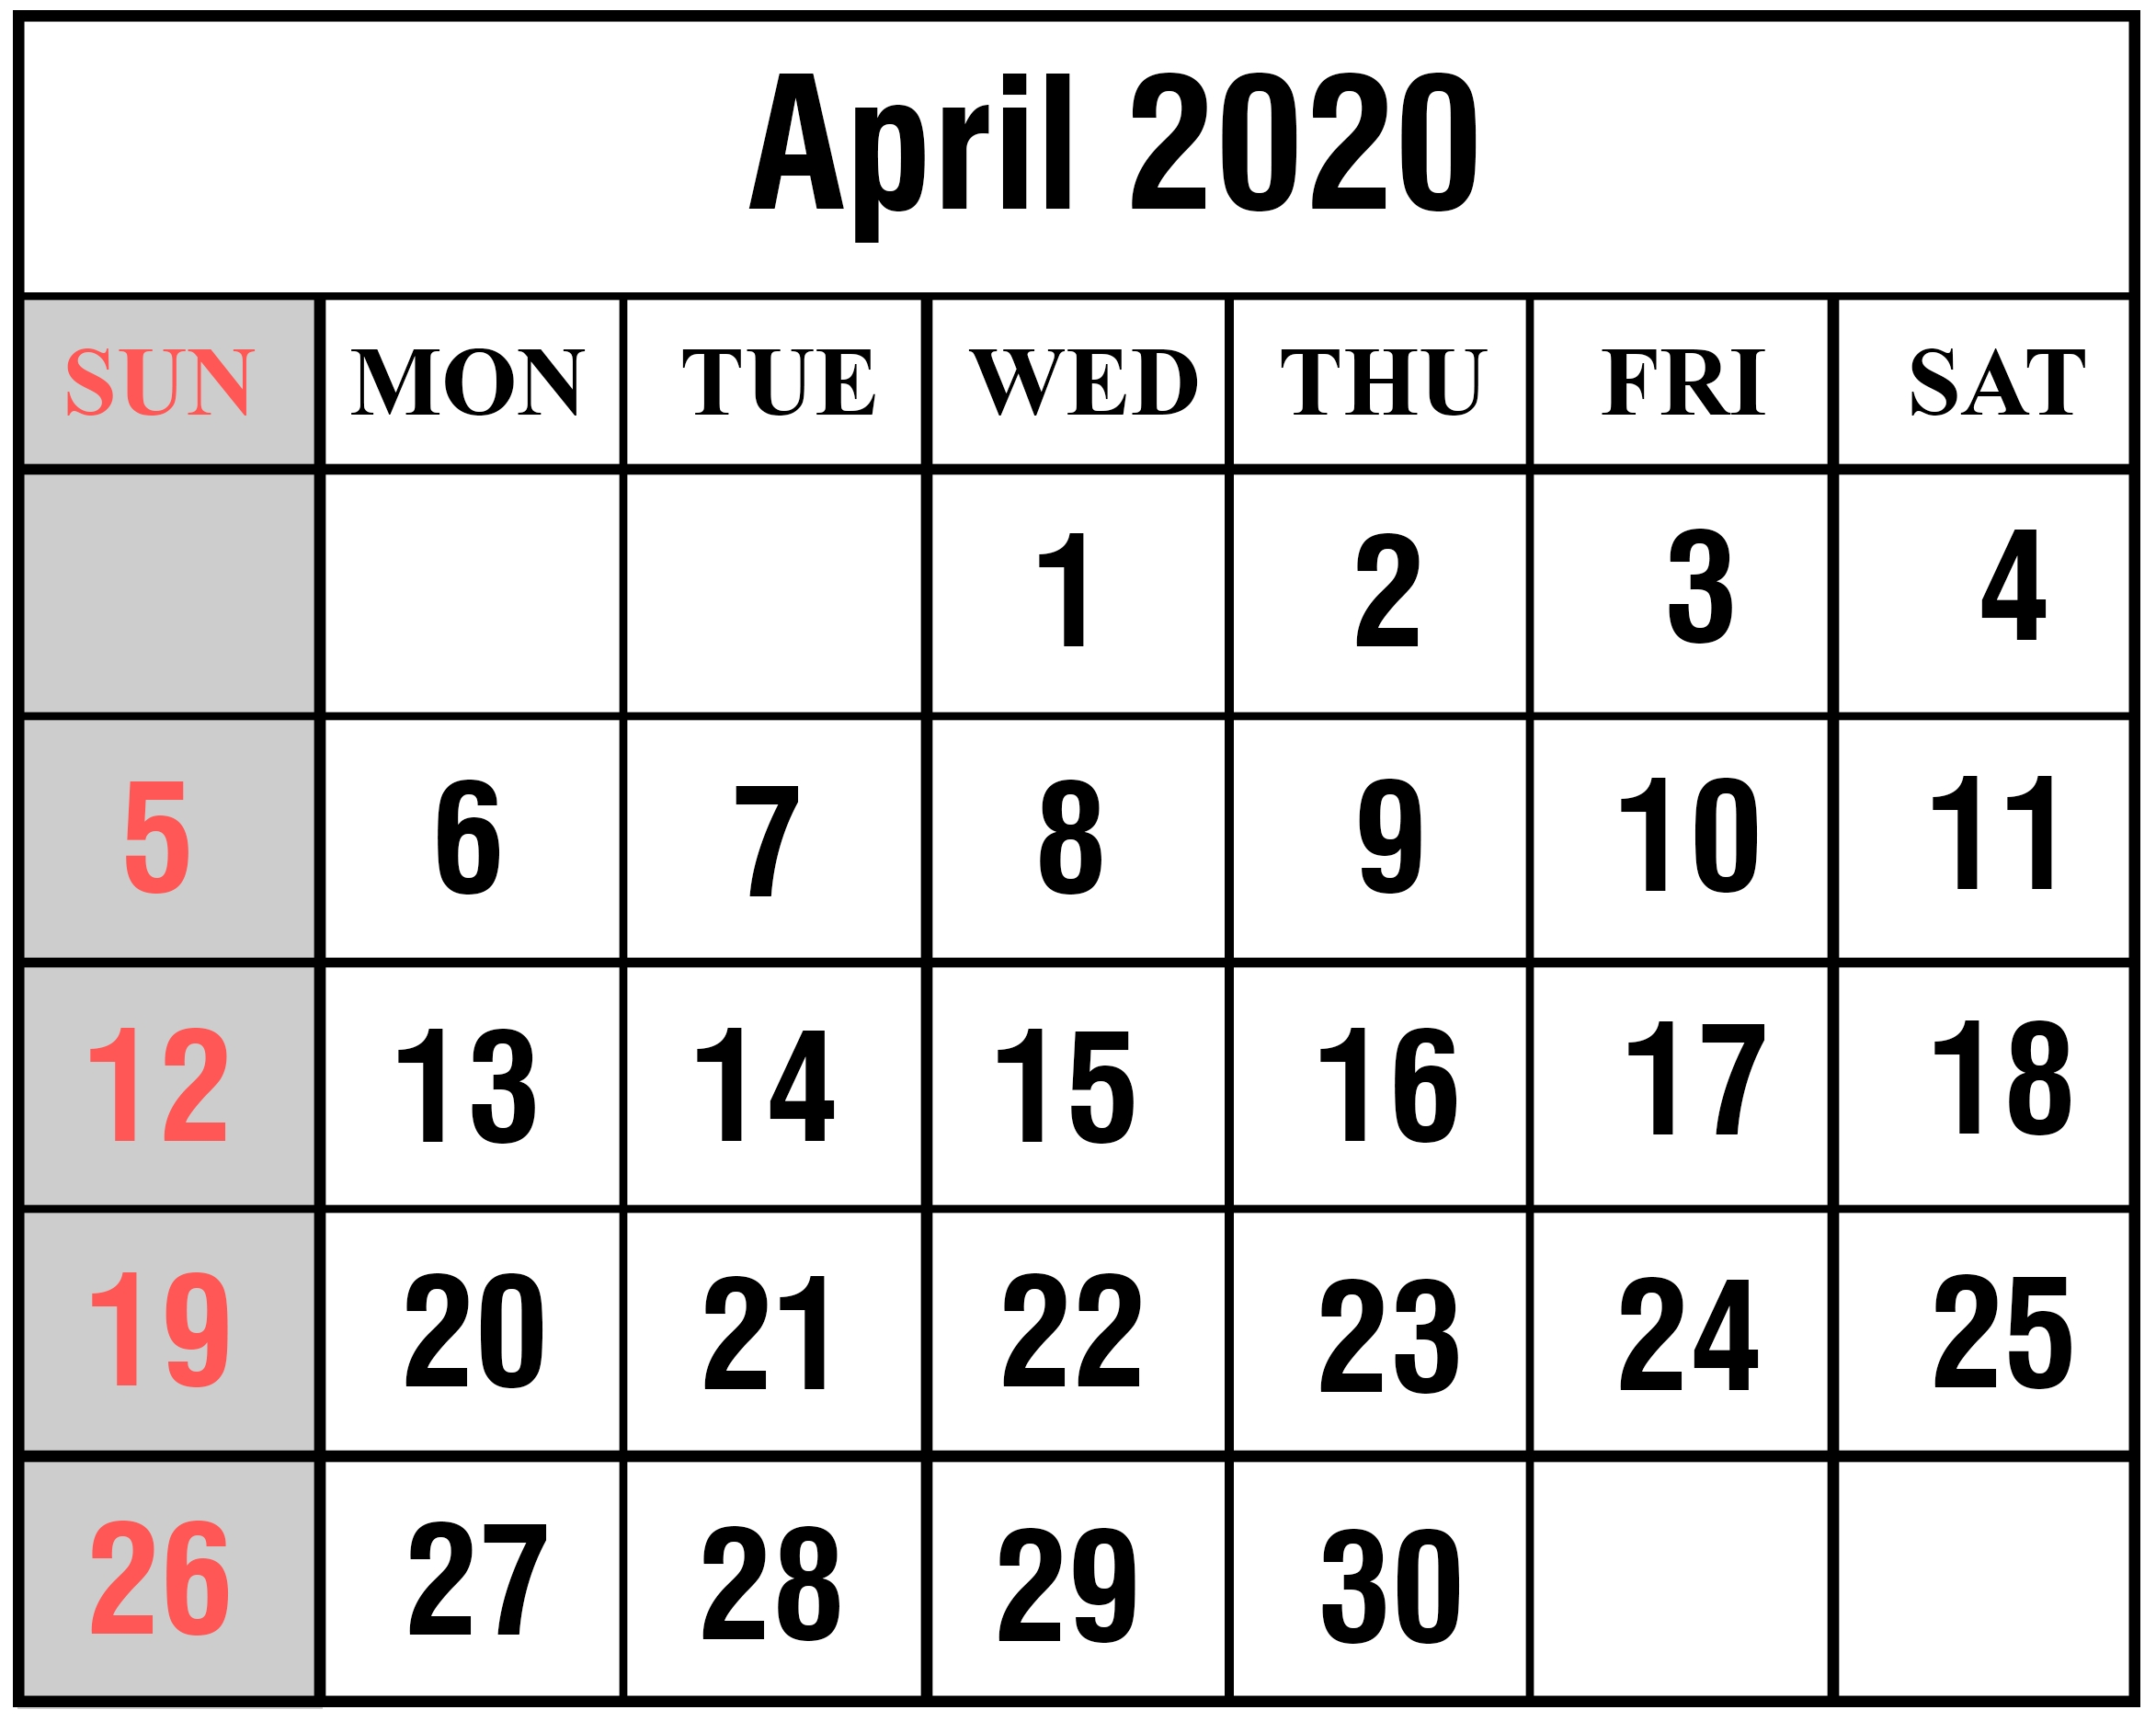 April 2020 Calendar Printable Template In Pdf, Word, Excel